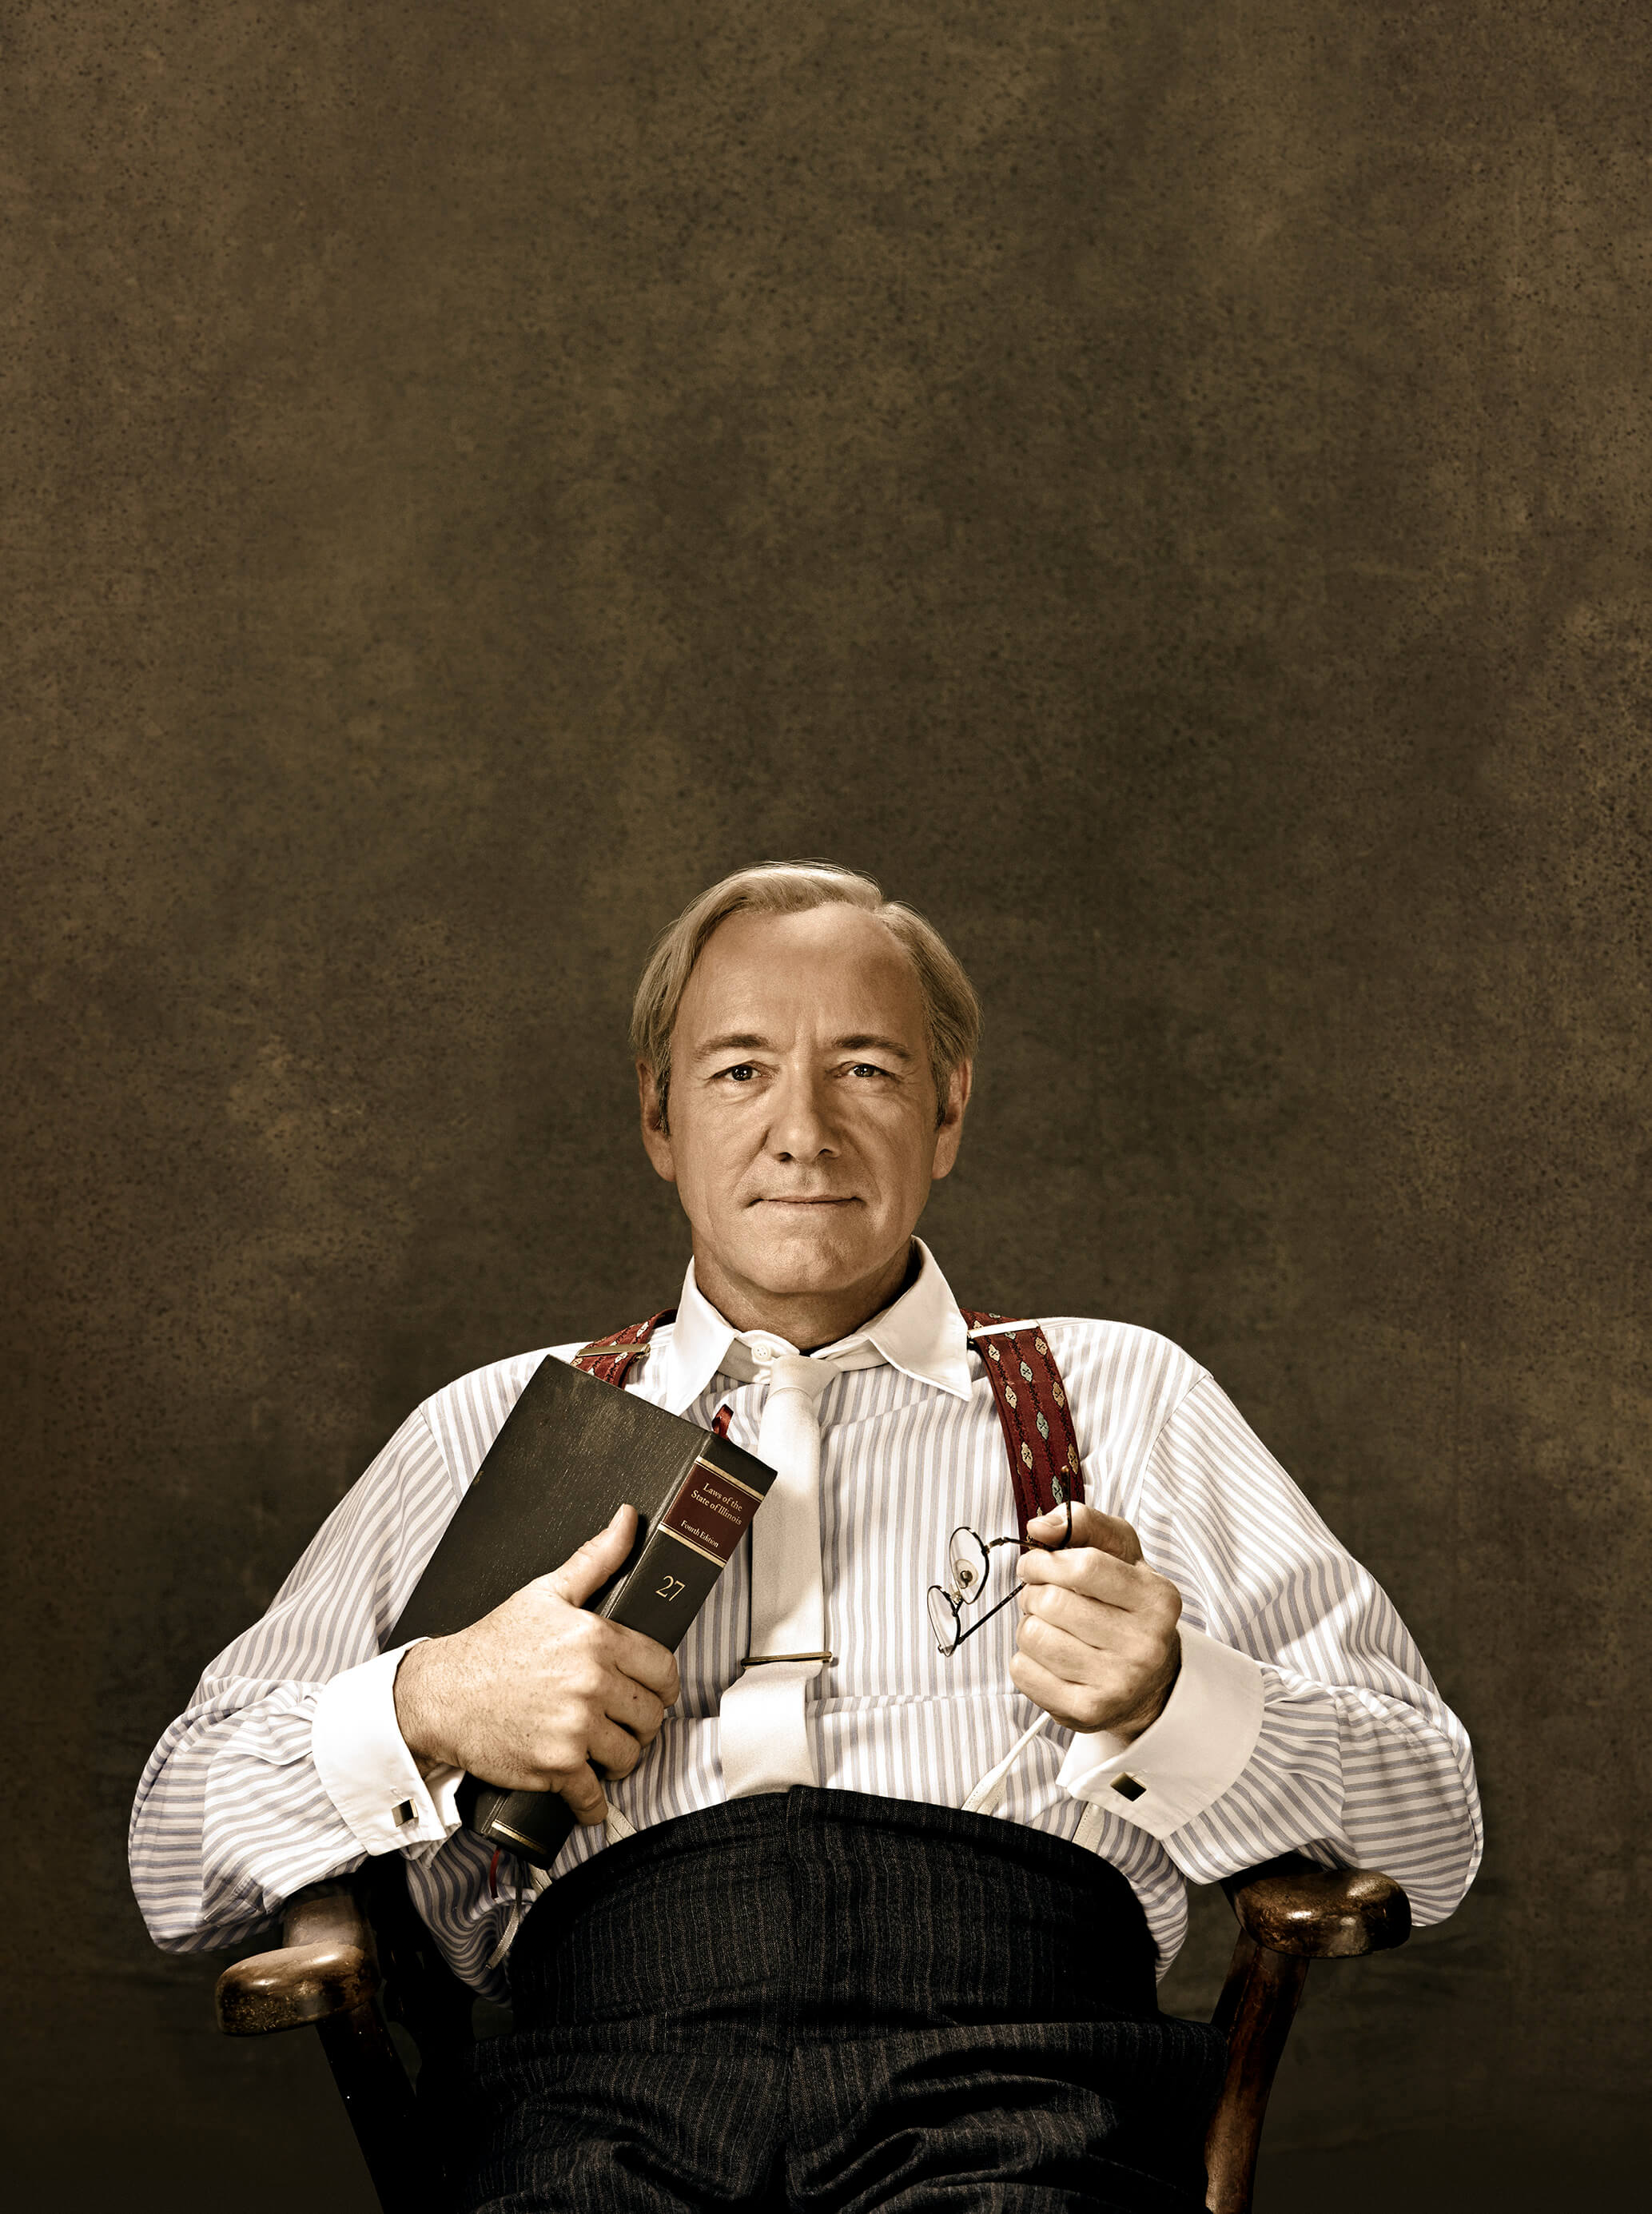 Kevin Spacey as Clarence Darrow Old Vic Theatre, Clarence Darrow at the Old Vic